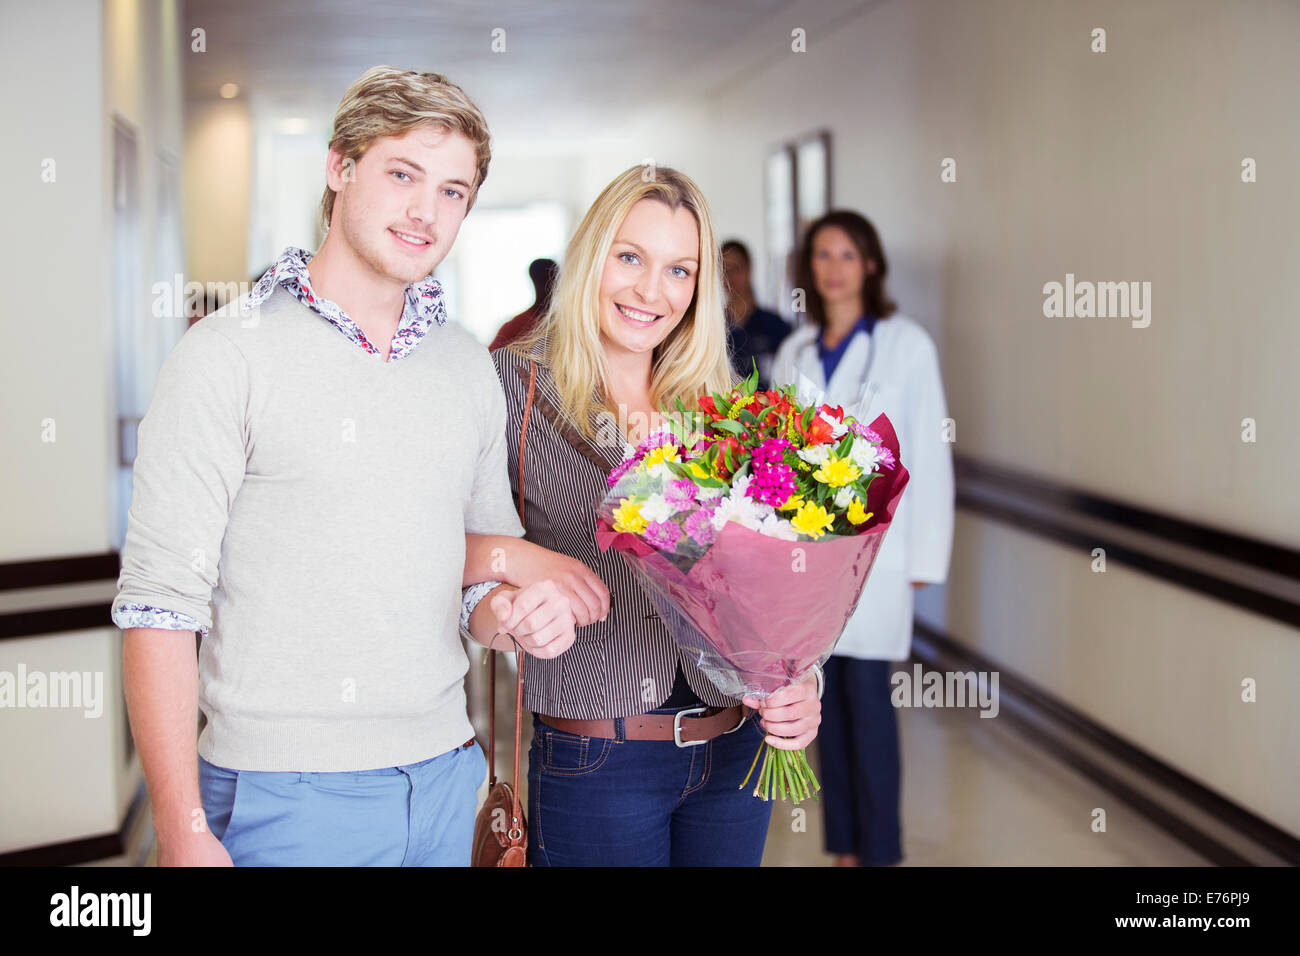 Couple carrying bouquet of flowers in hospital Stock Photo